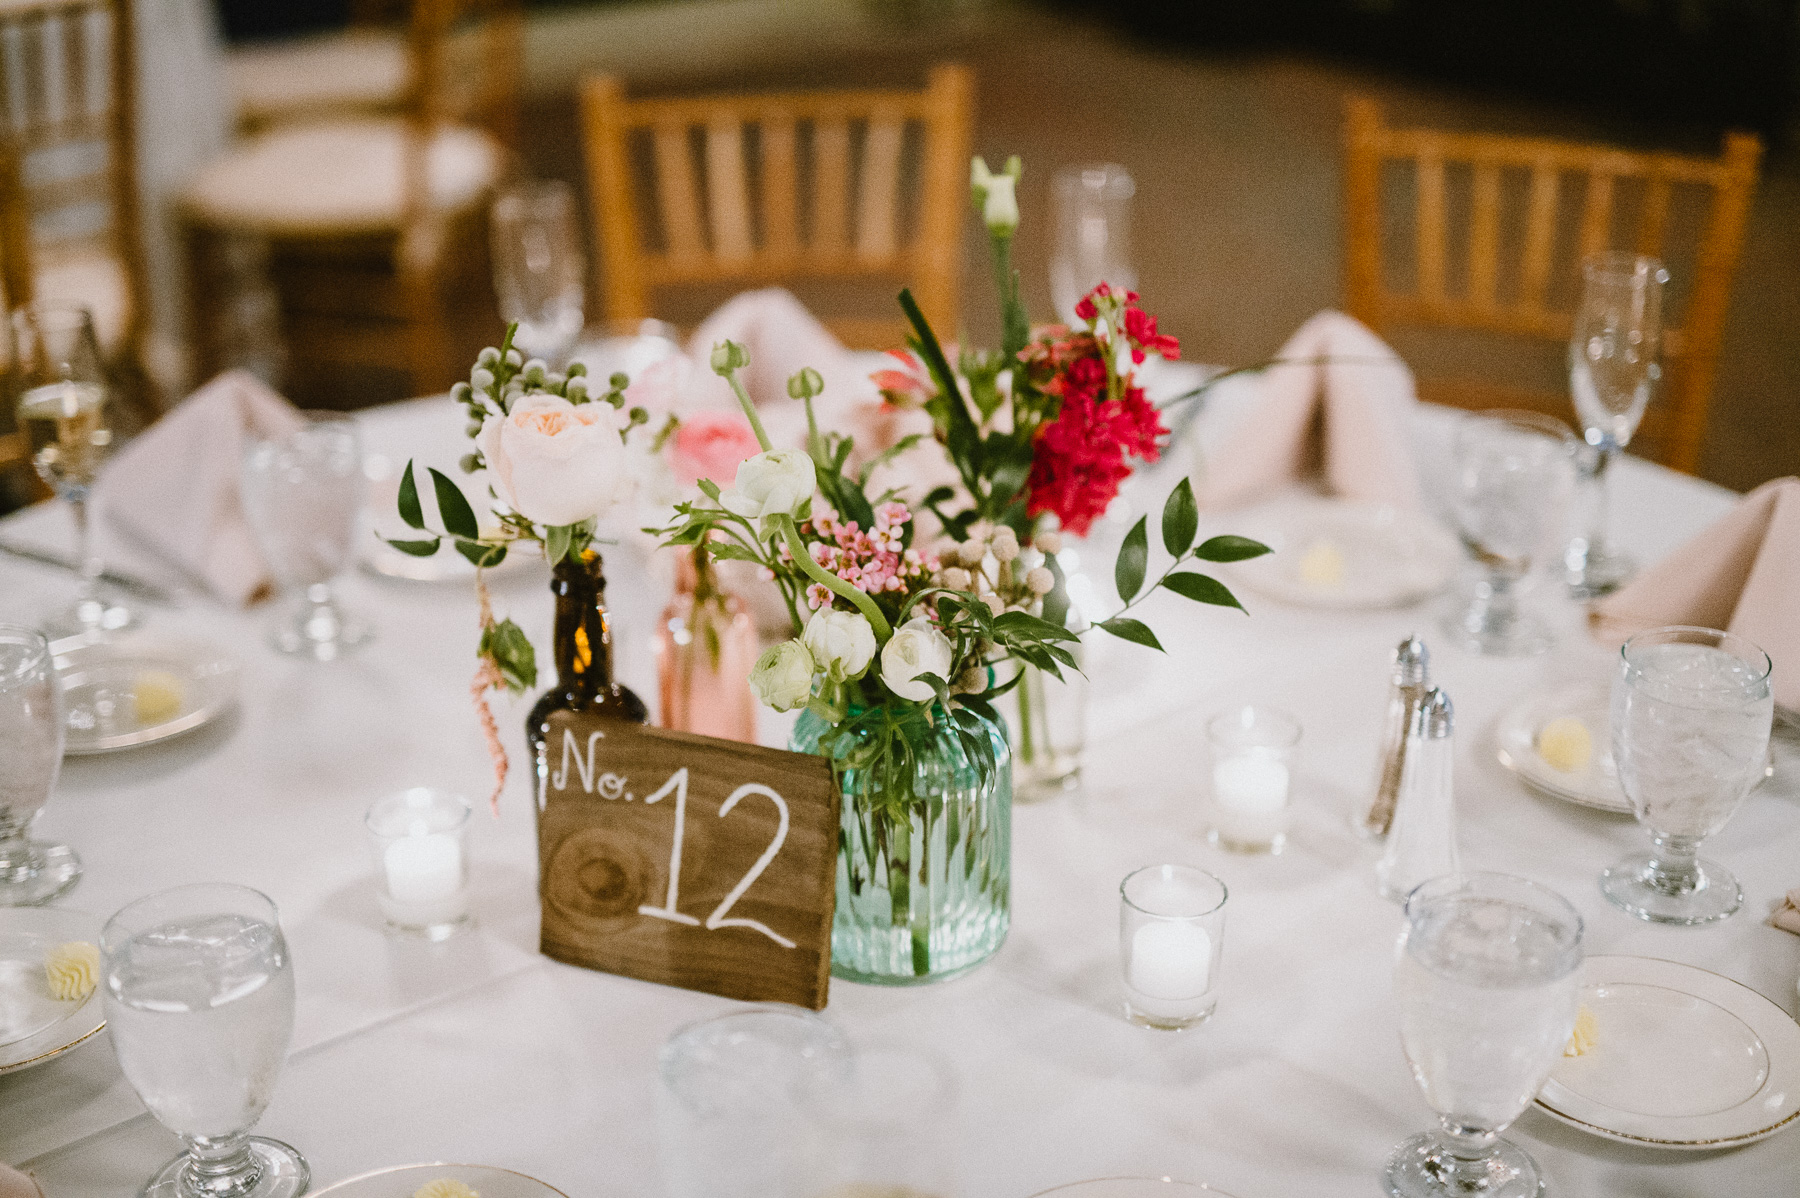 The_Carriage_House_at_Rockwood_Park_wedding_photo076.jpg